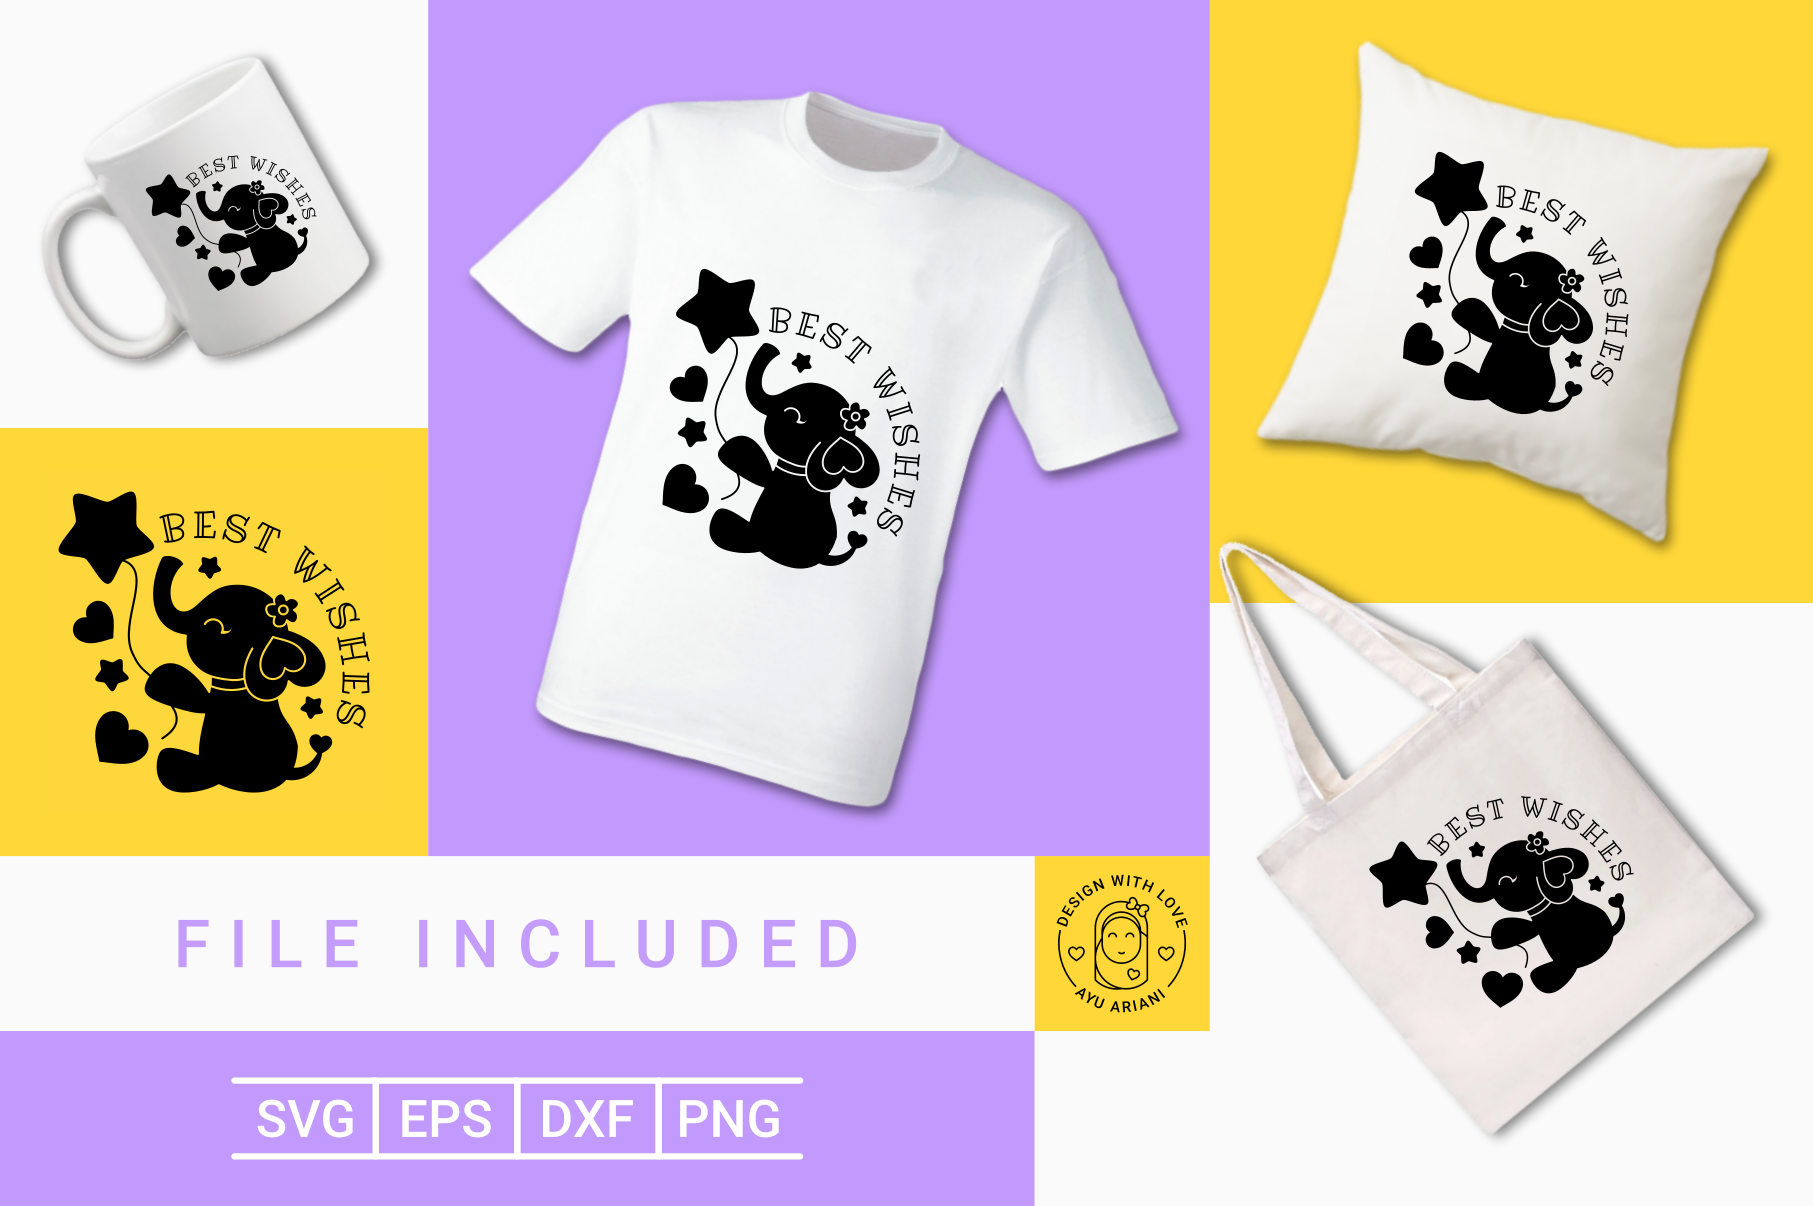 Elephant Best Wishes Silhouette Graphic By Ayuariani Creative